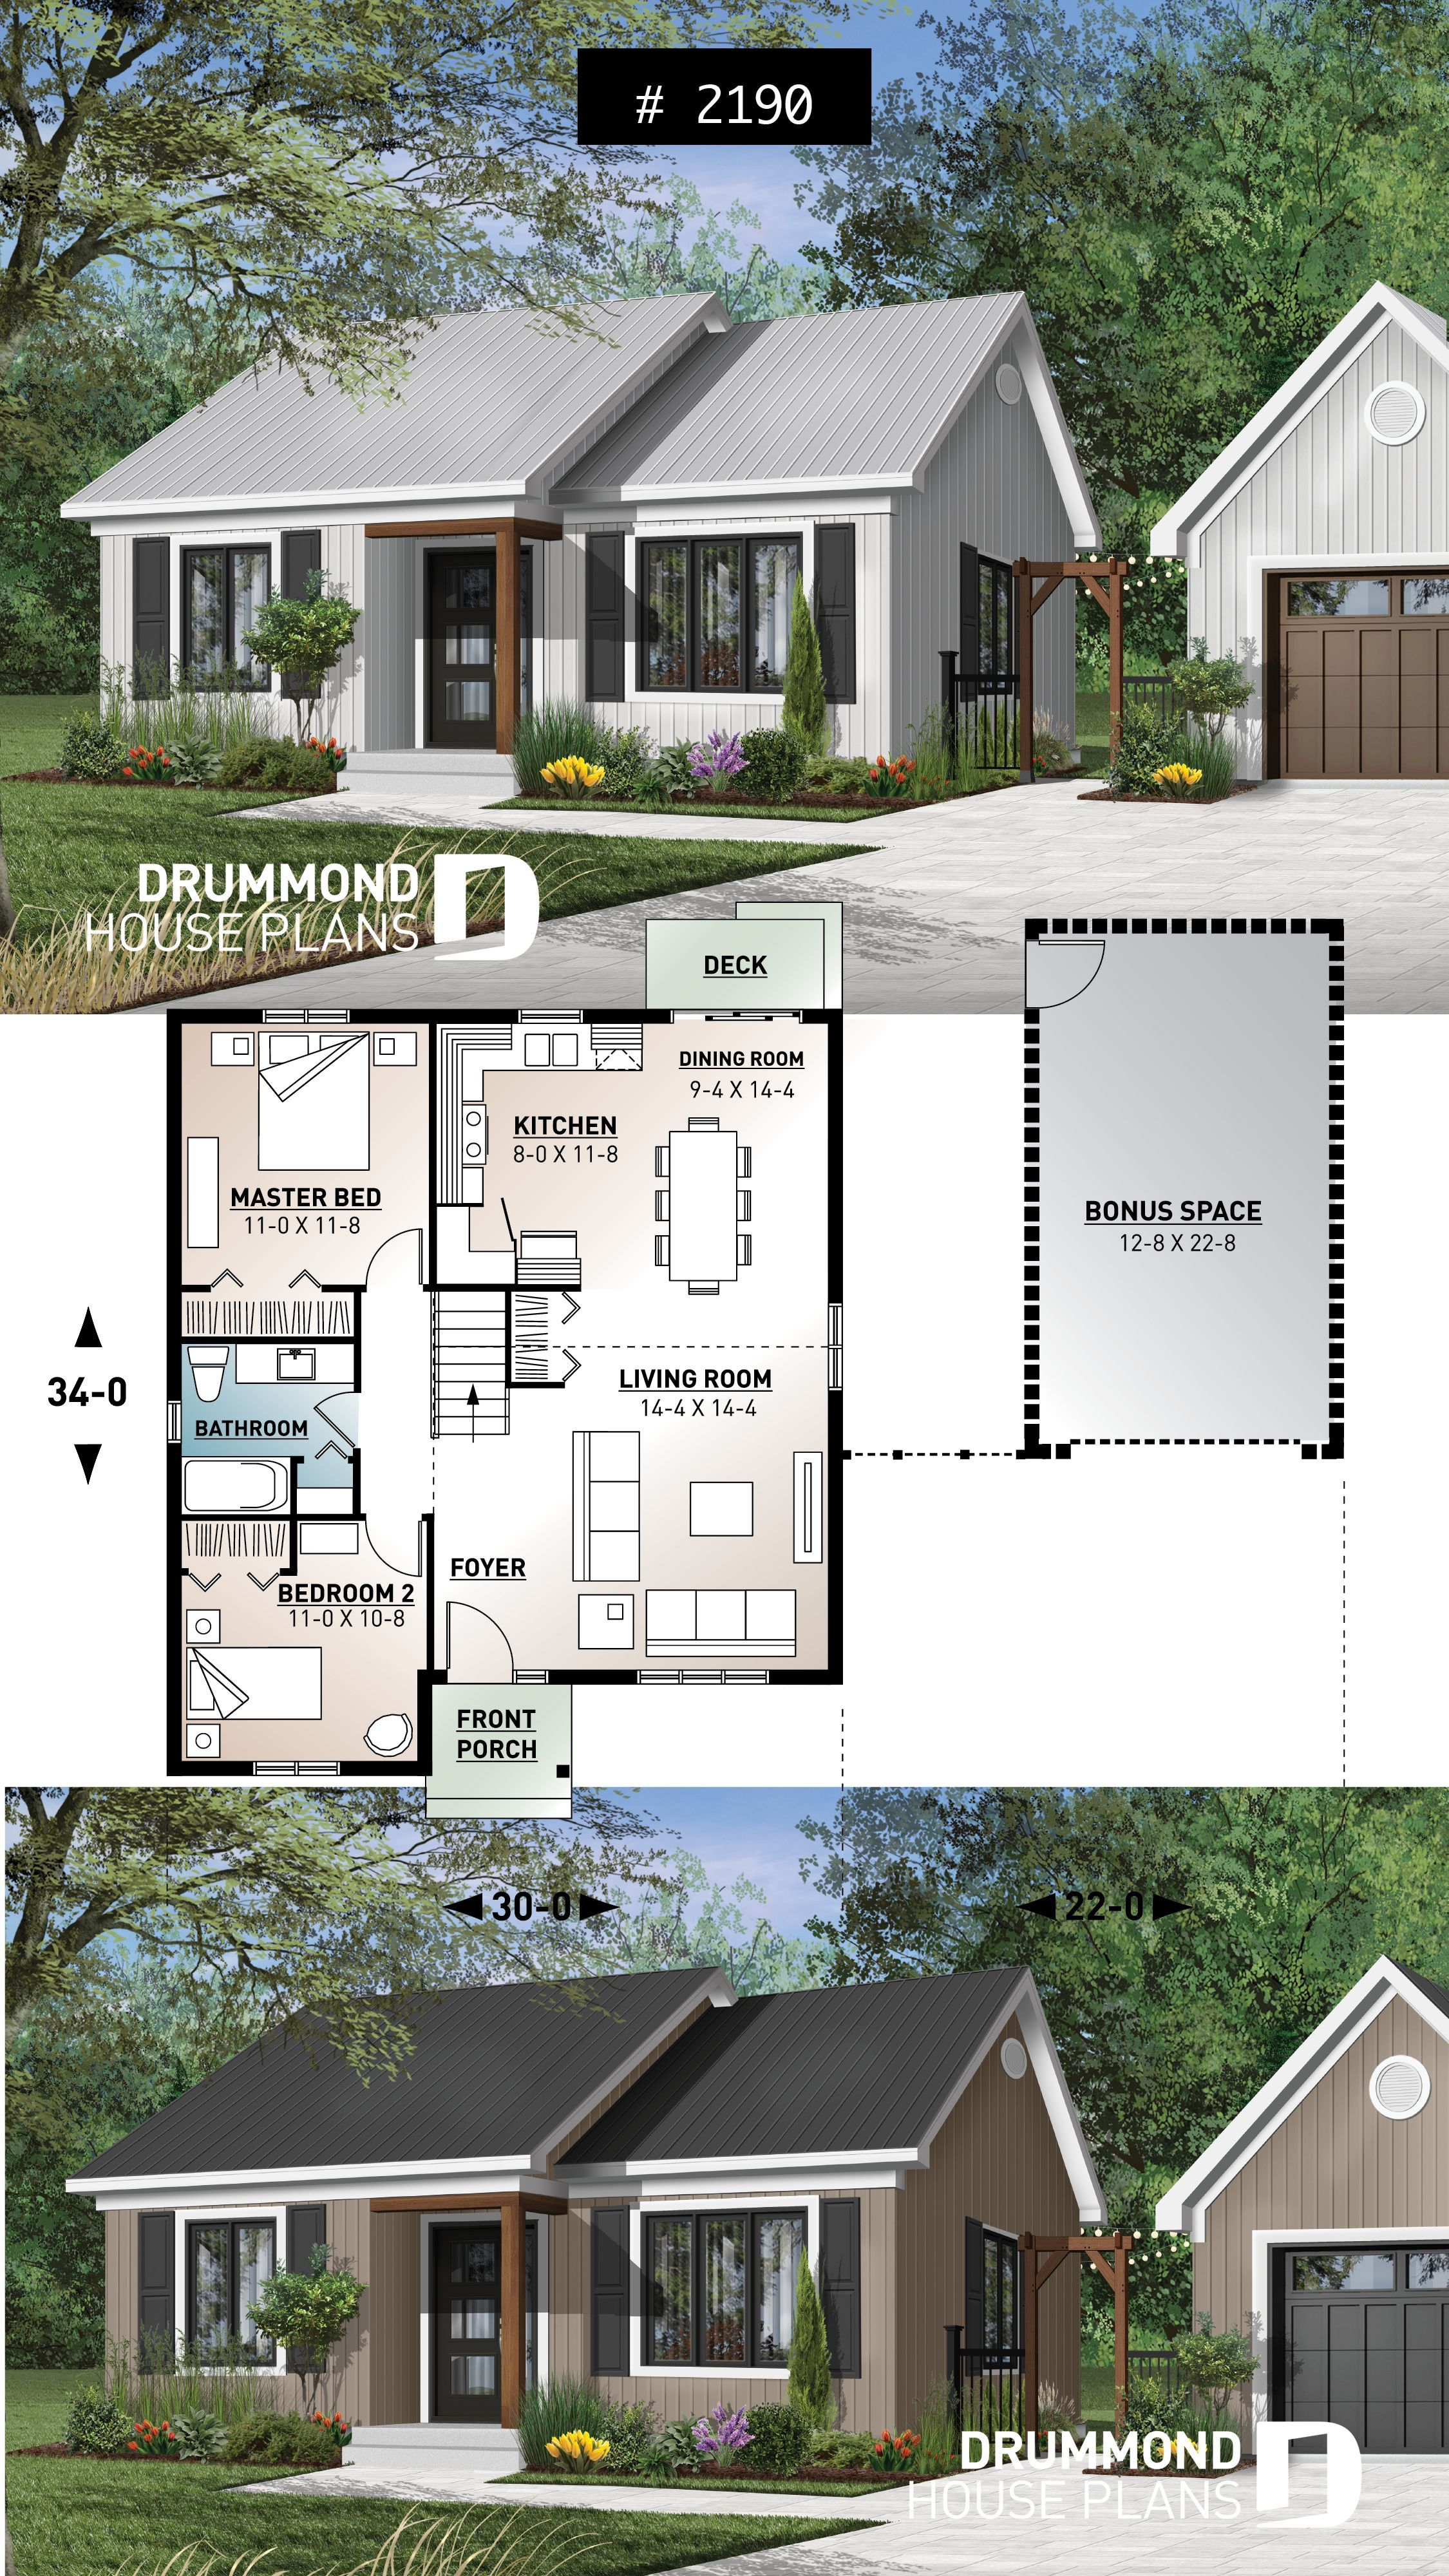 2 Large Bedrooms Small Simple Transitional Style House Plan Very Low Construction Cost Open Space Sma Drummond House Plans House Plans Architecture House